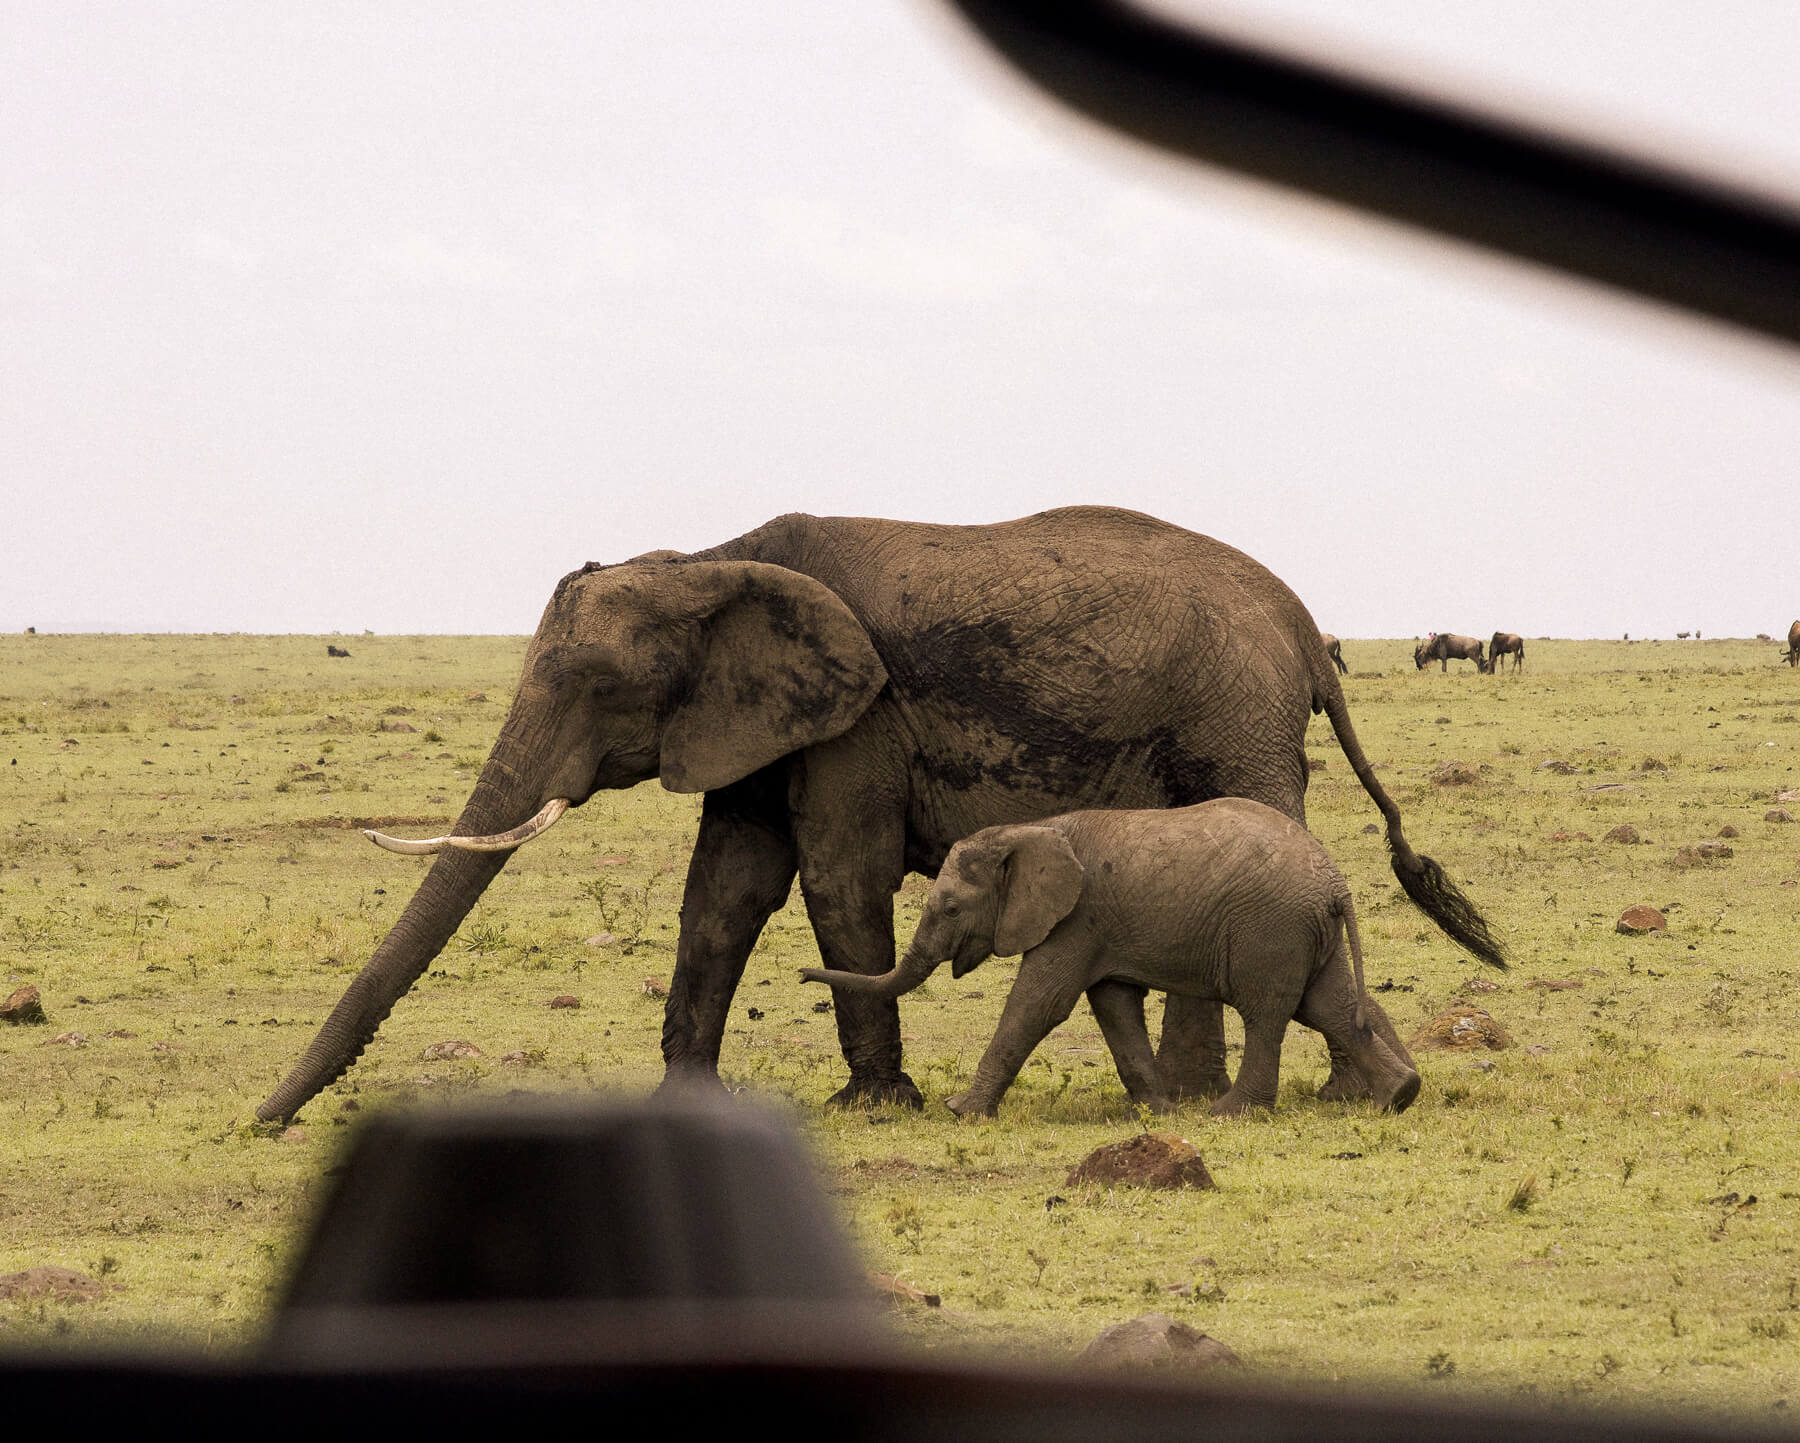 A mother elephant and her baby walking across the Mara - Viewed through the bars of a safari car